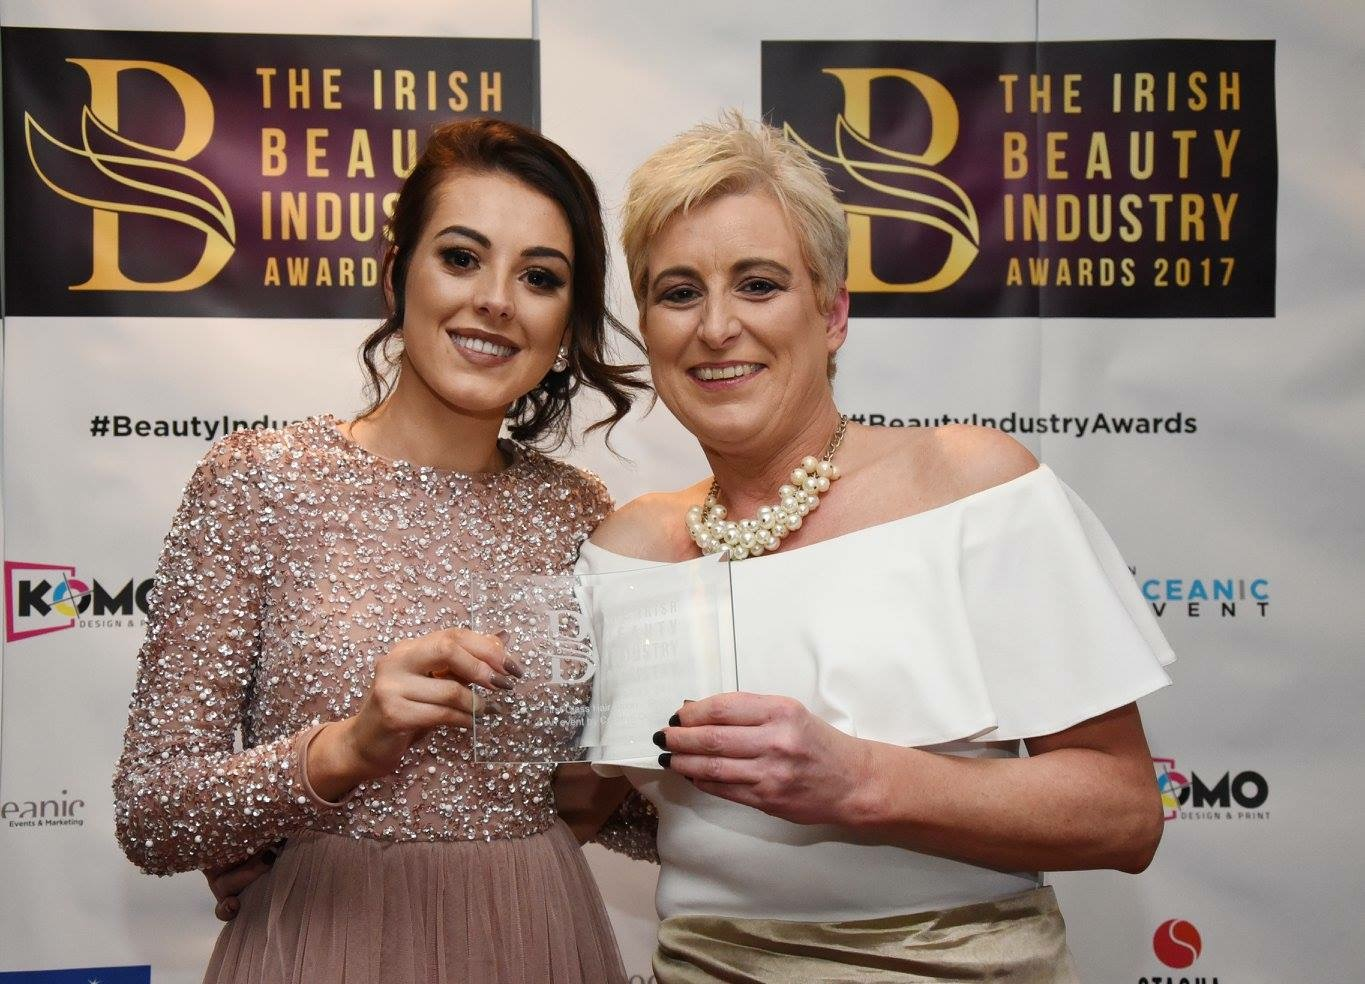 Brush n blush wins at irish beauty industry awards for A maureen mccarthy salon